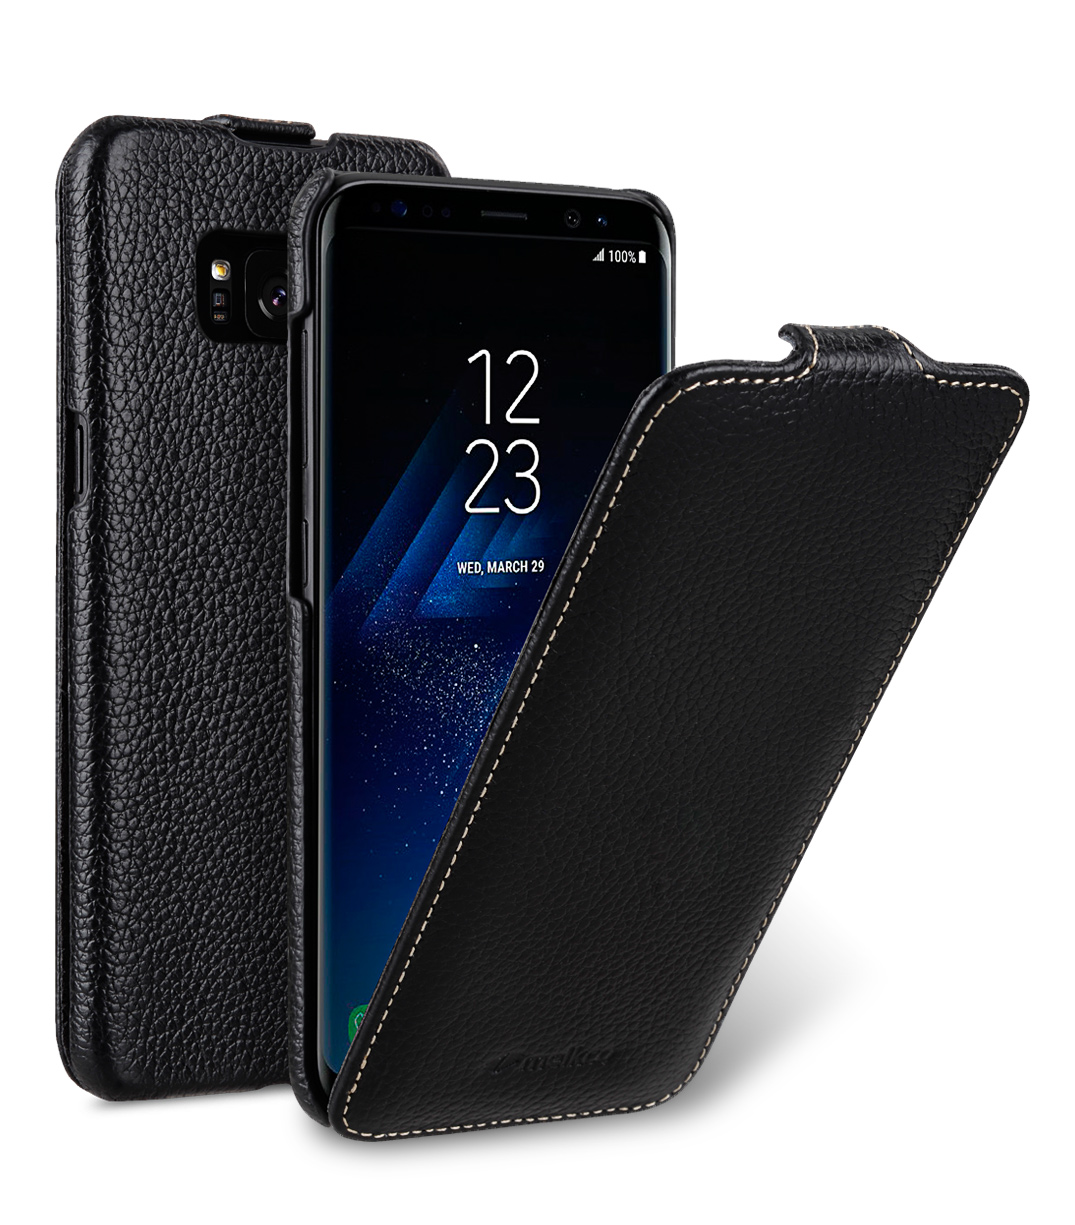 Melkco Premium Leather Case for Samsung Galaxy S8 Plus - Jacka Type